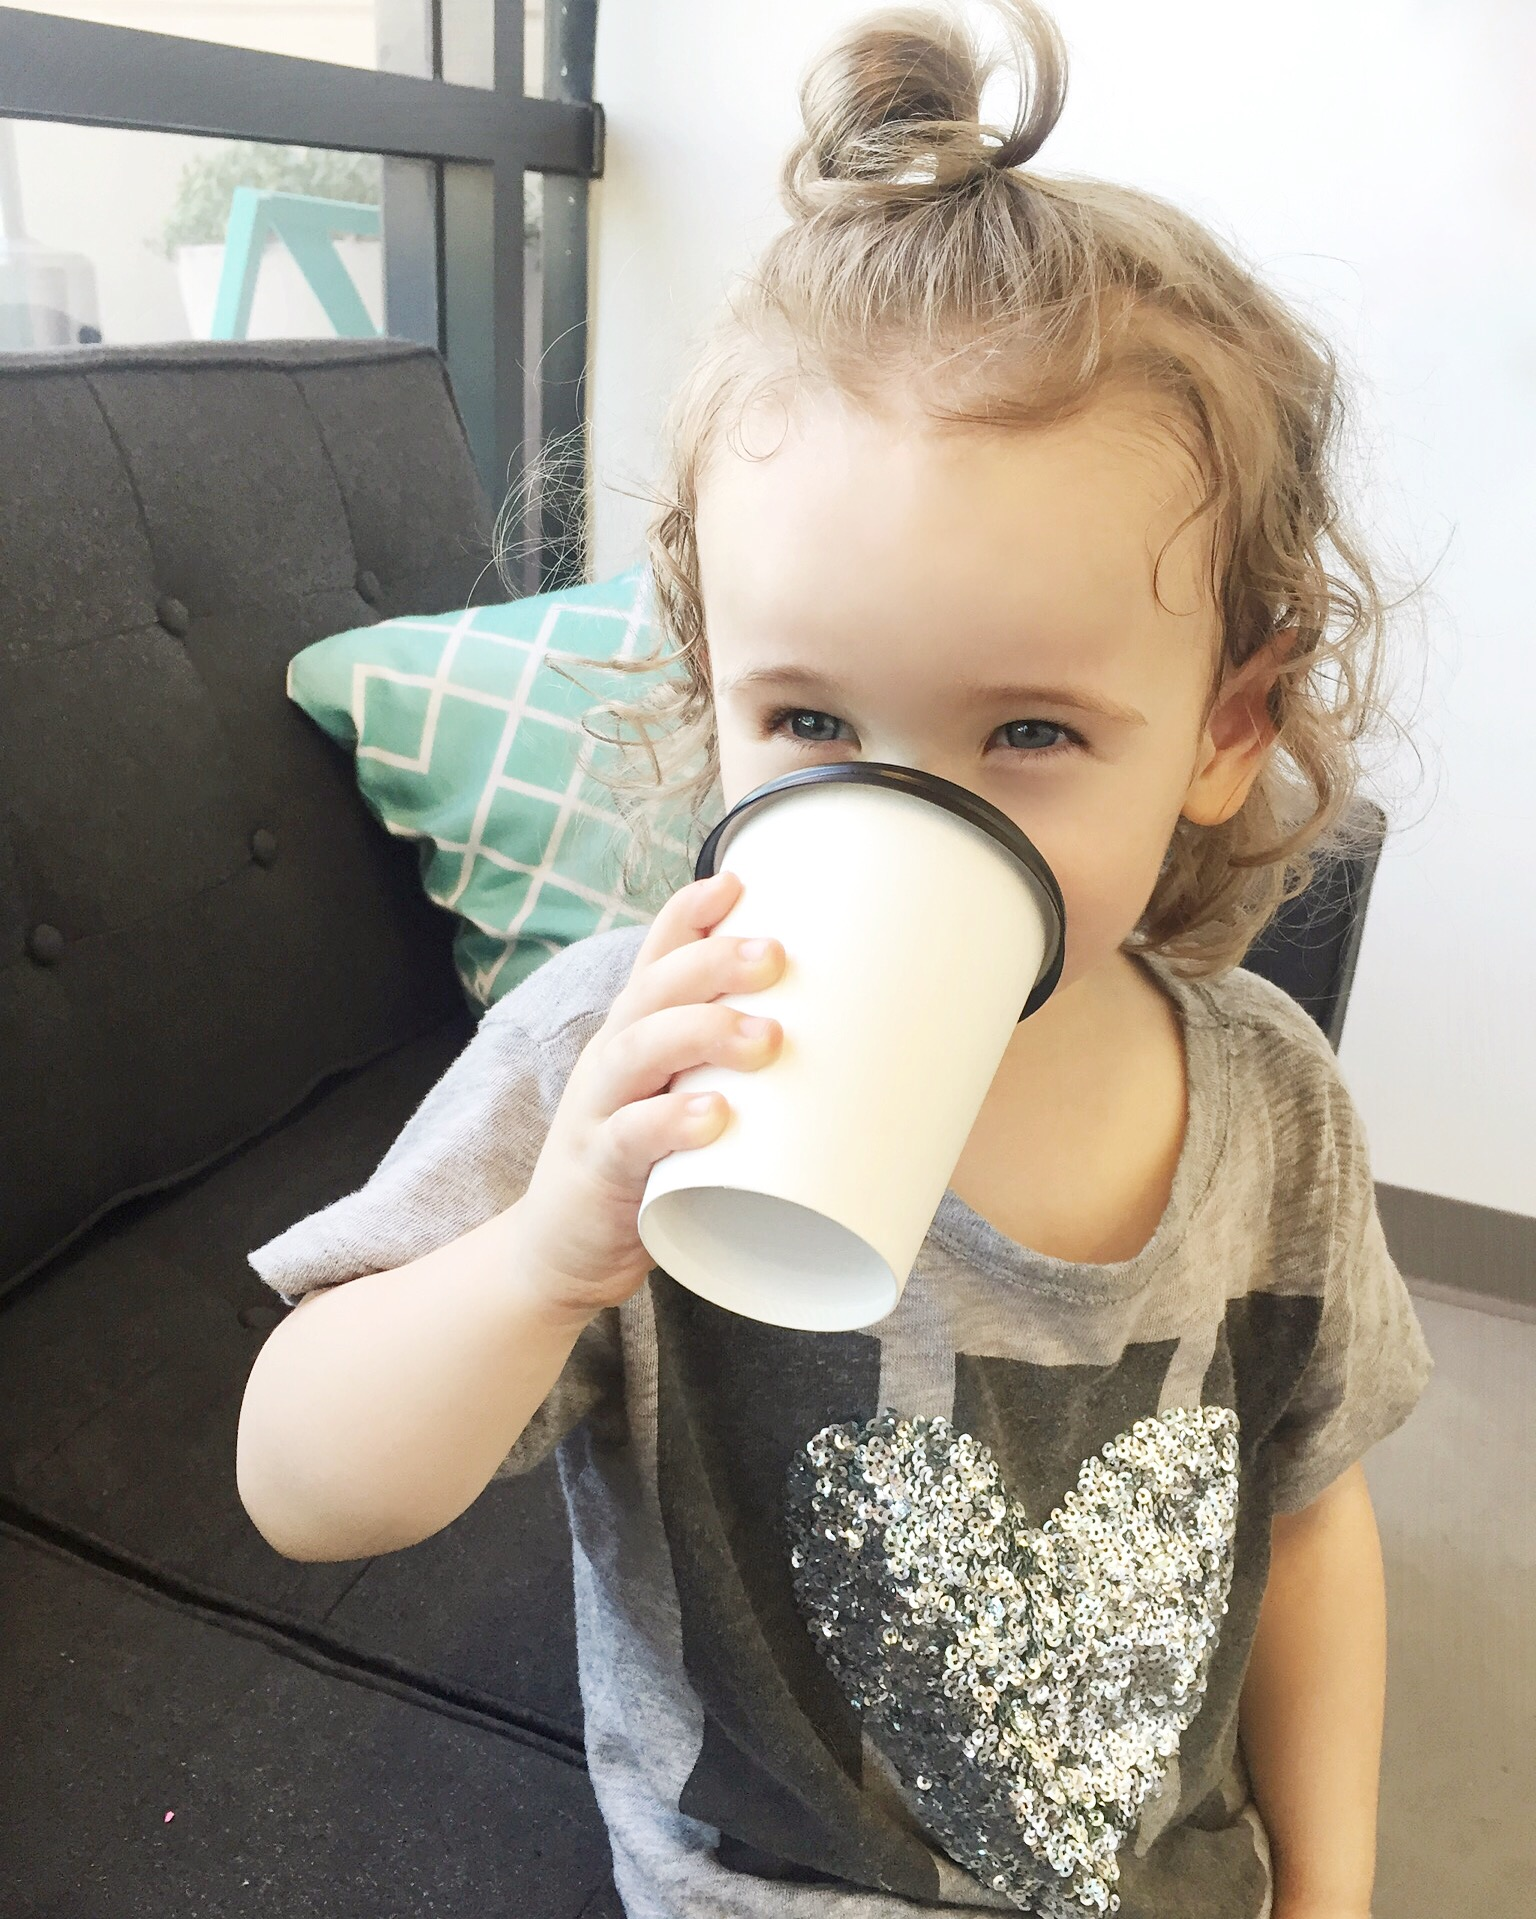 her usual: decaf coffee with almond milk. #teachthemyoung